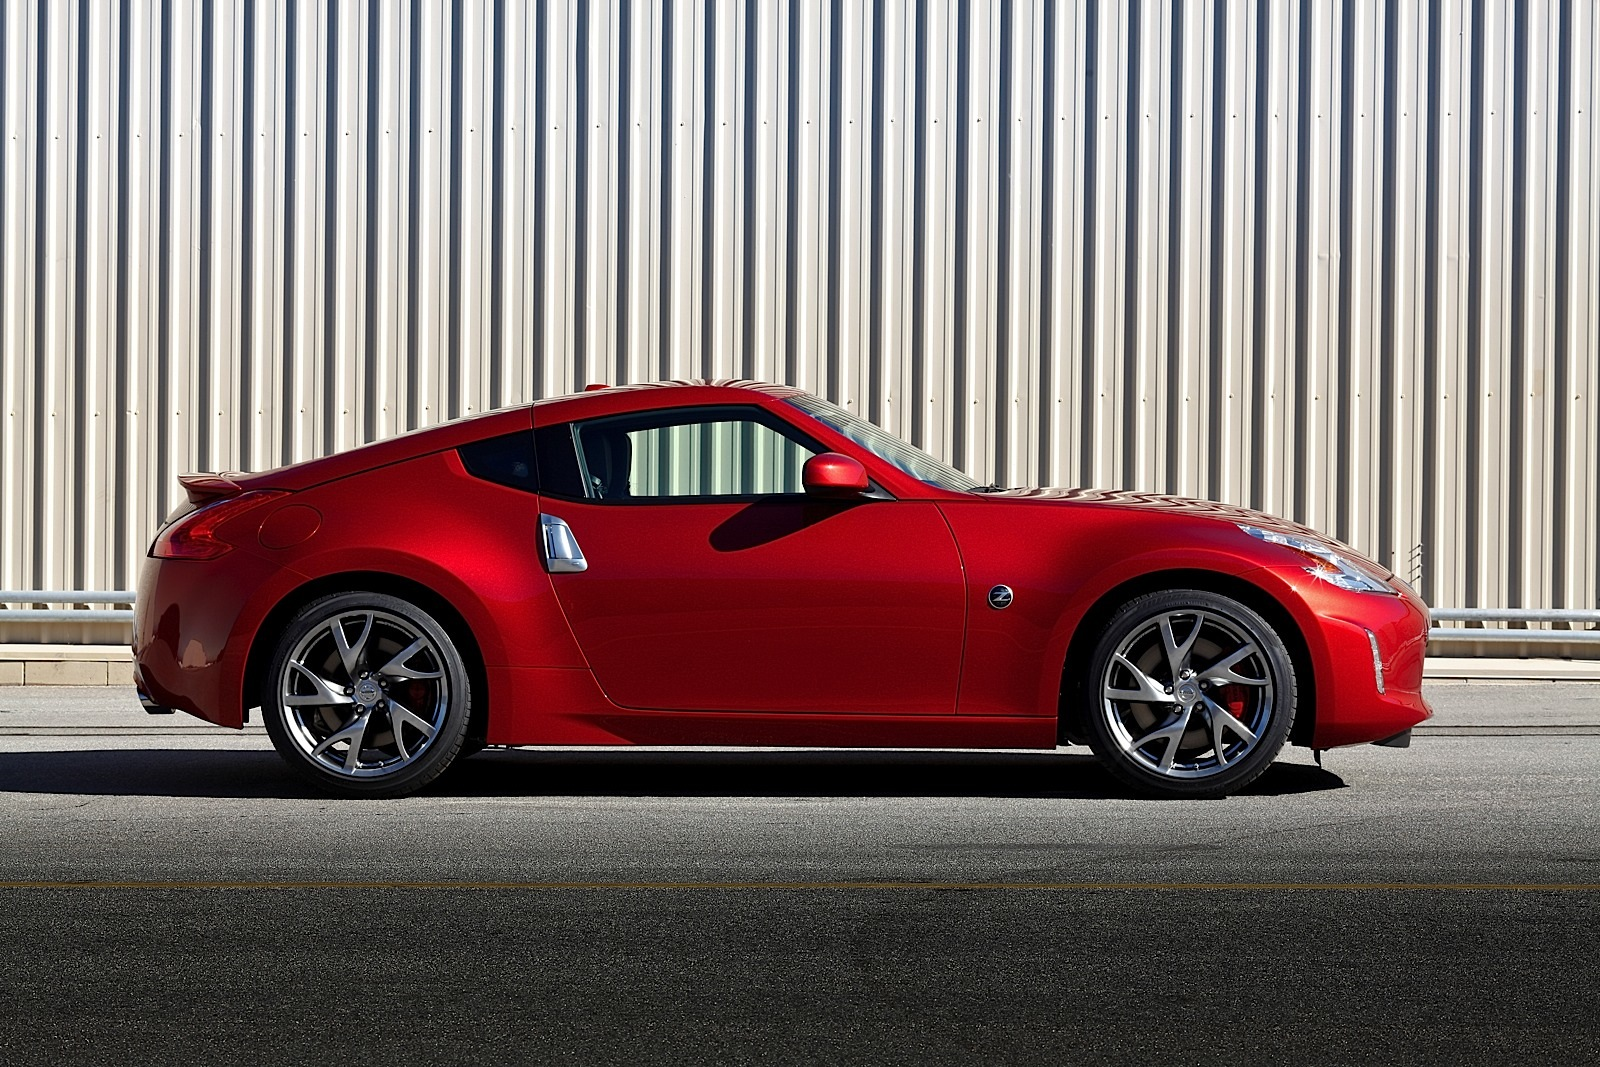 2015 Nissan Maxima For Sale >> Nissan 370Z Updated for 2013 Model Year - autoevolution